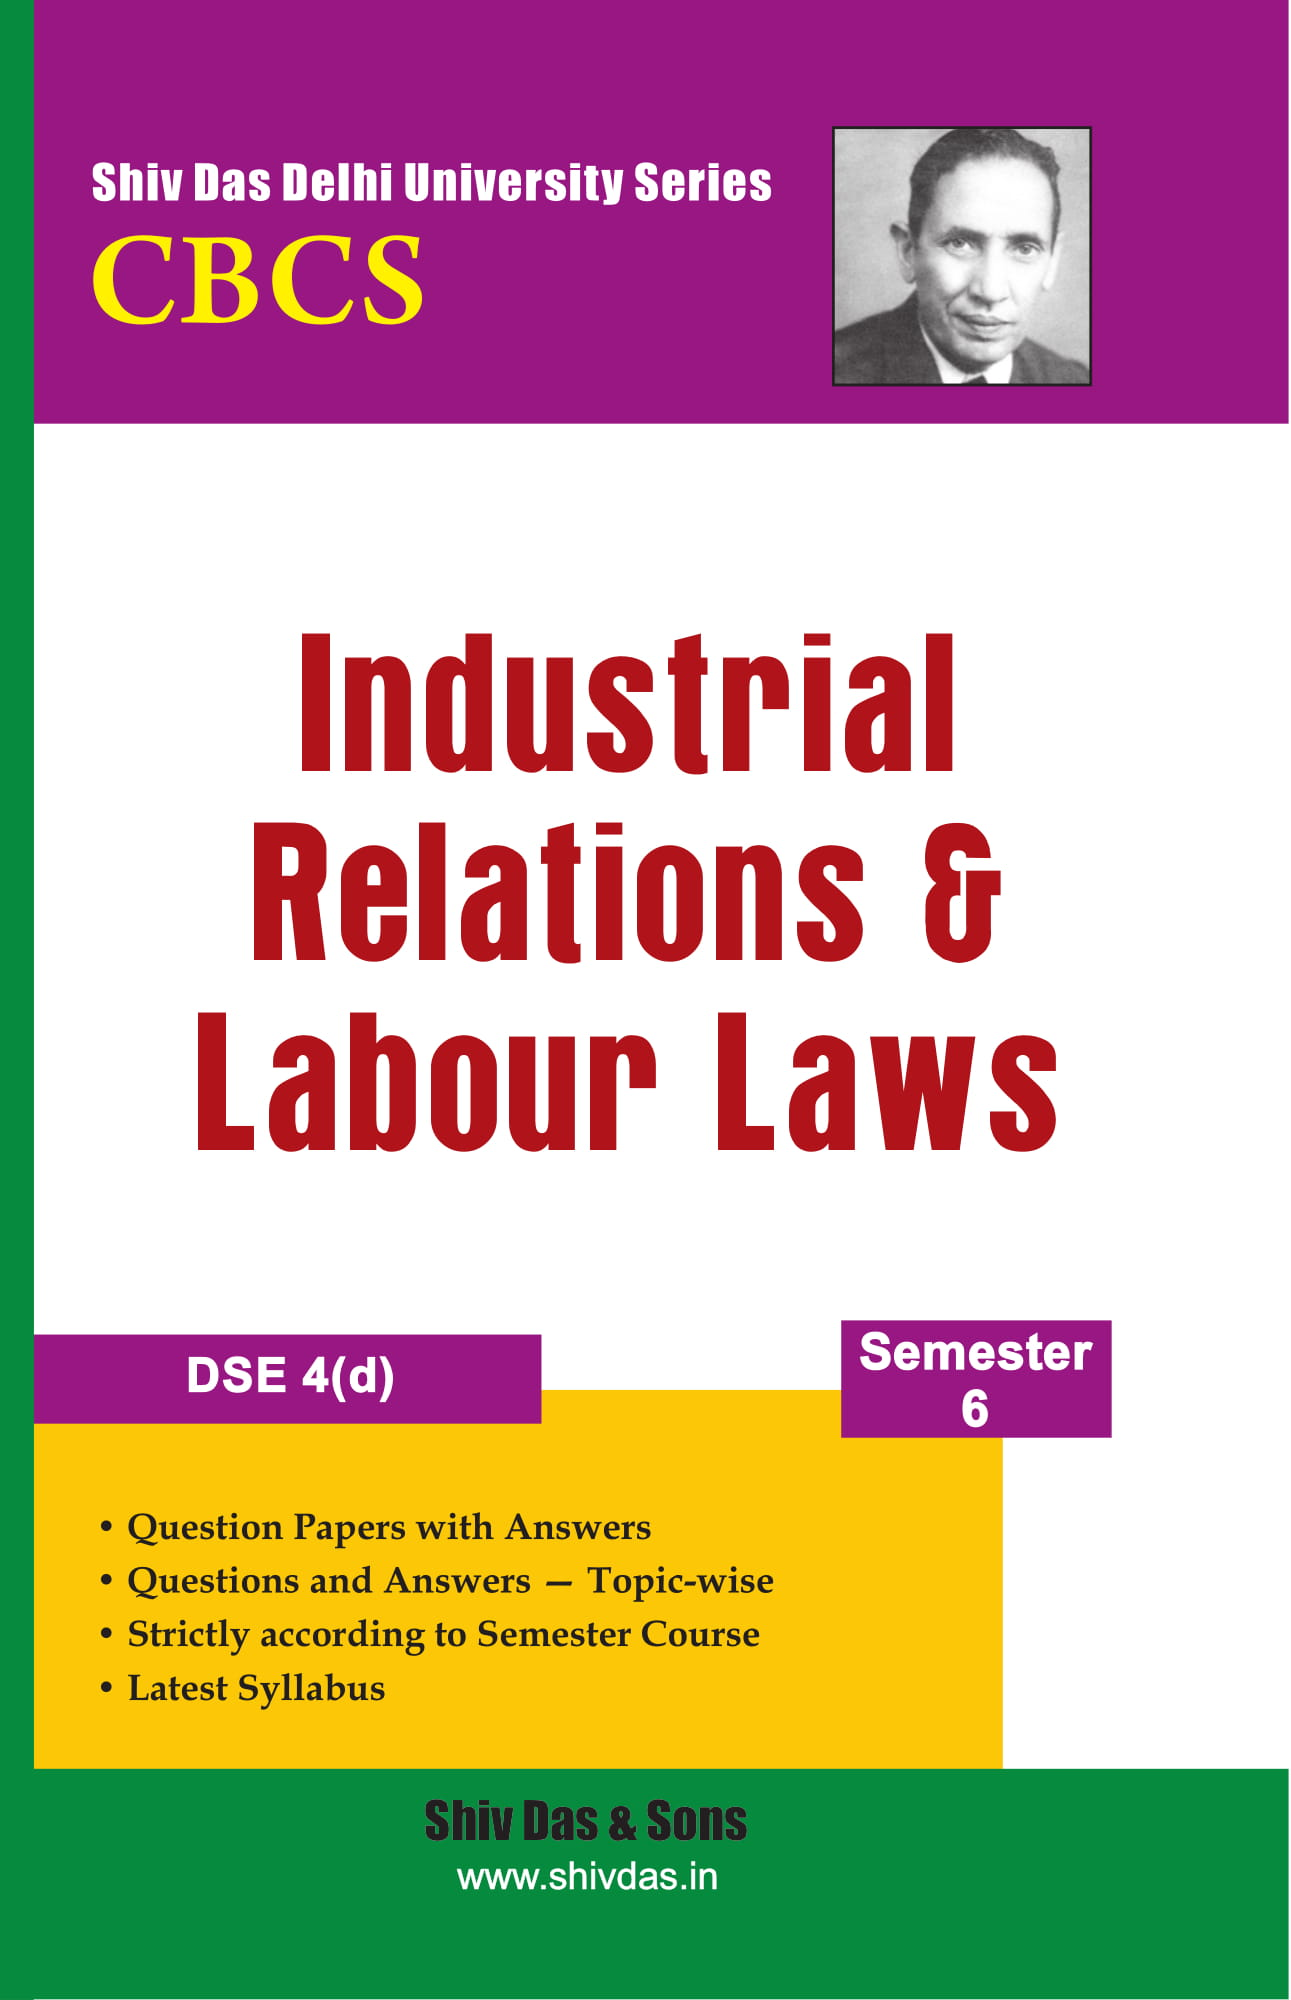 Industrial Relations & Labour Laws for B.Com Hons Semester 6